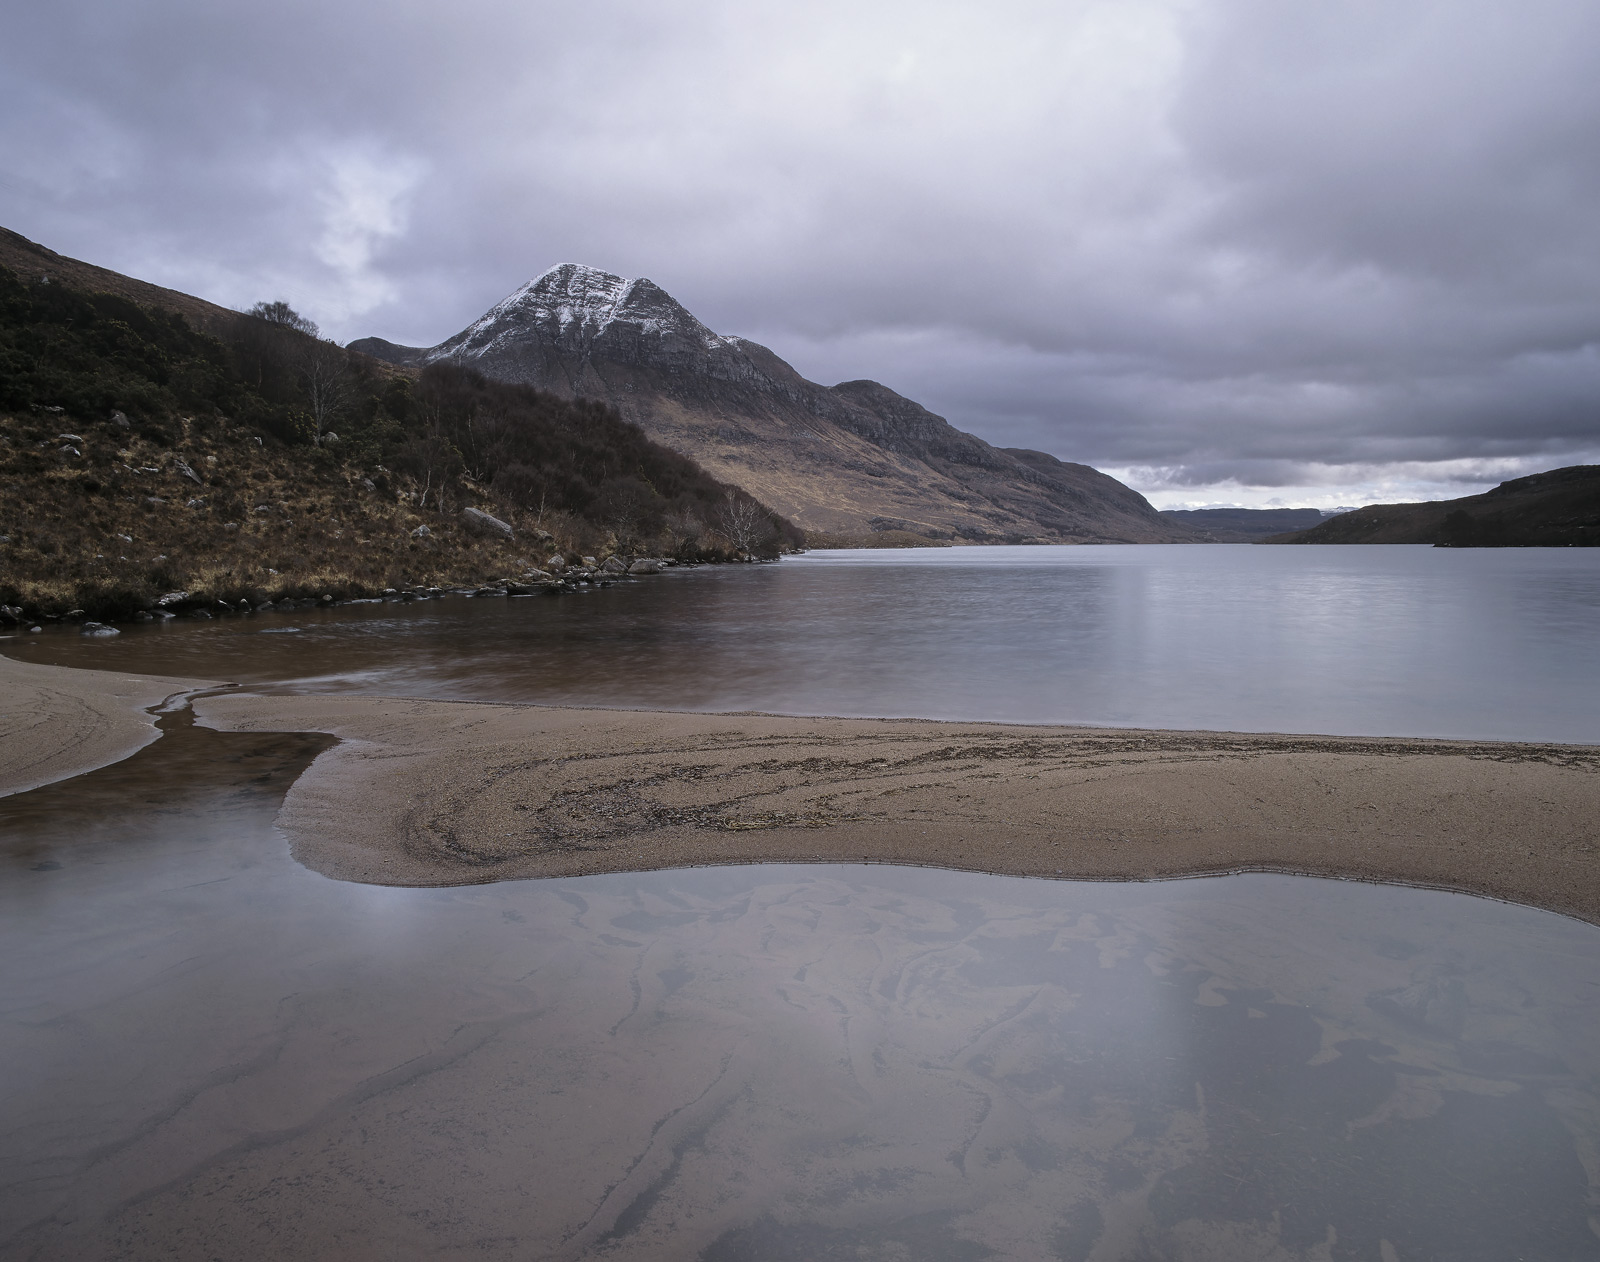 A terracotta sandbar cuts across the moody blue and steely grey reflected sky of a winter afternoon at Loch Lurgainn right...